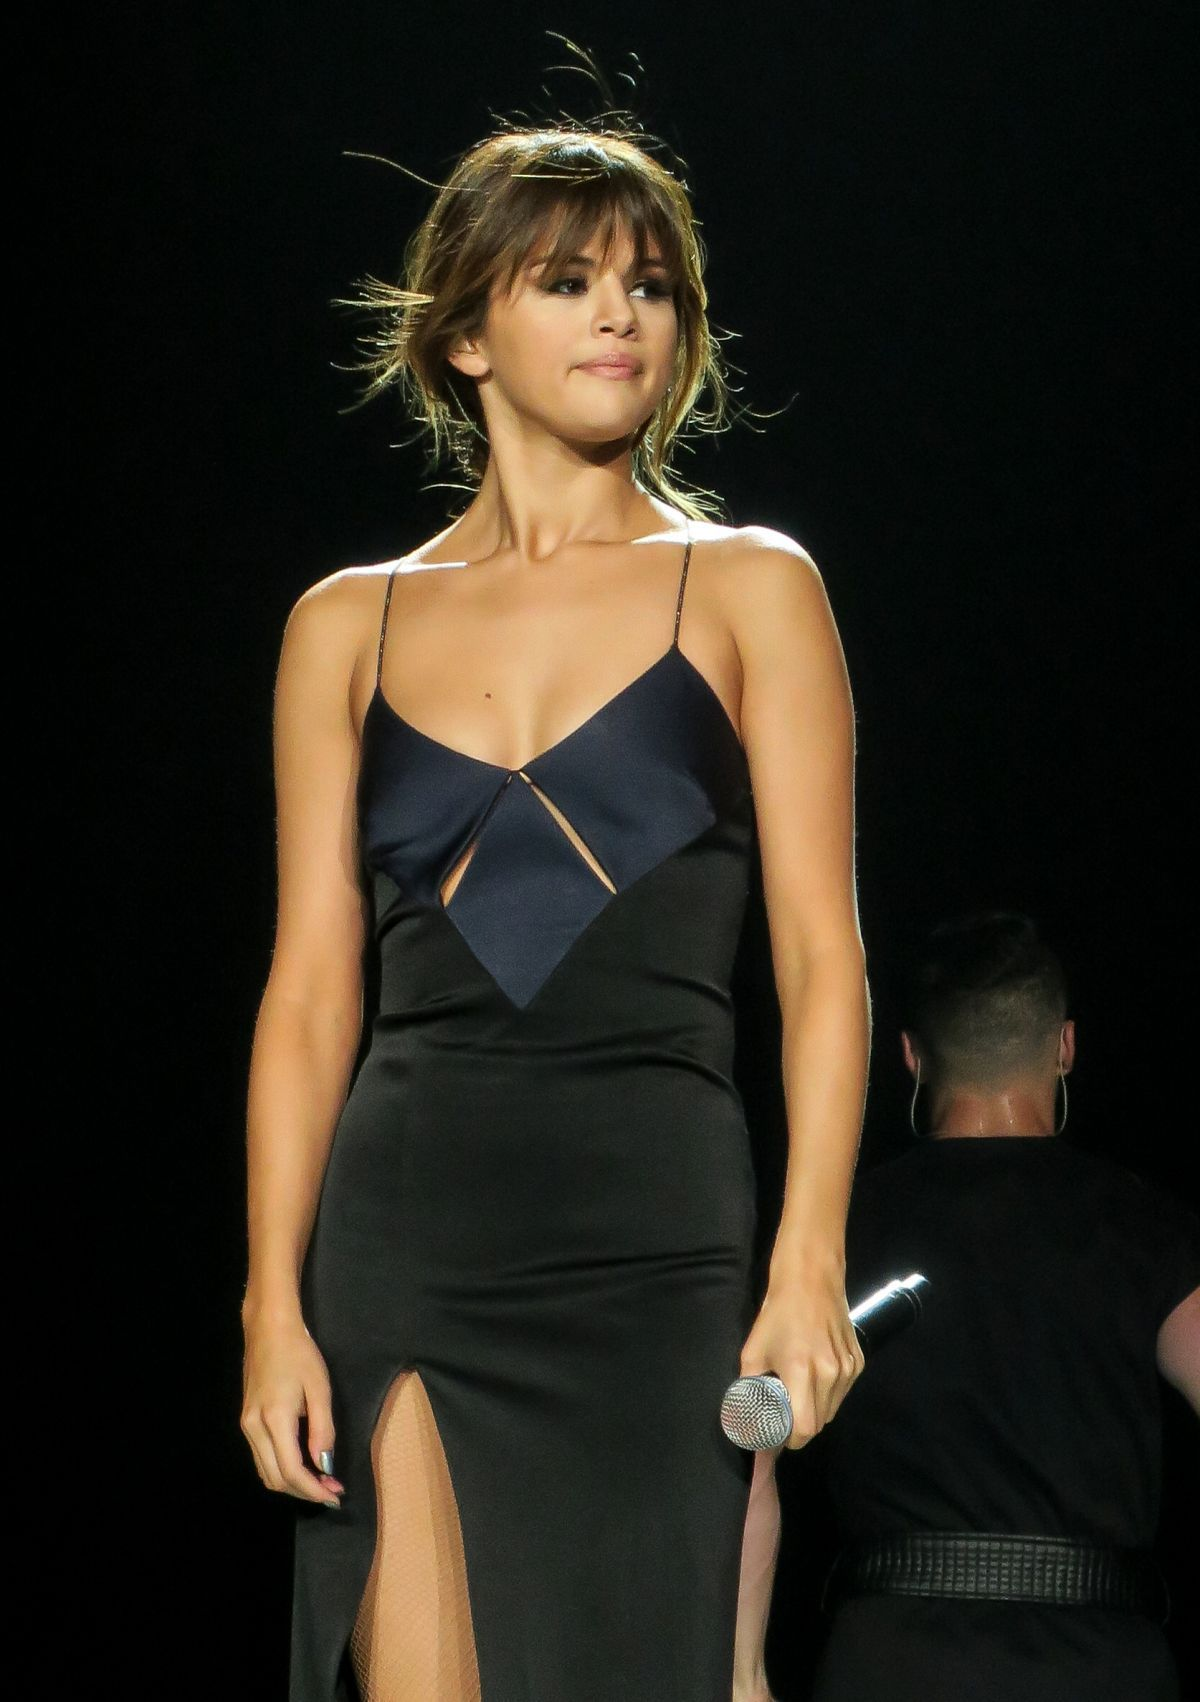 selena gomez performs at revival tour at staples - daily